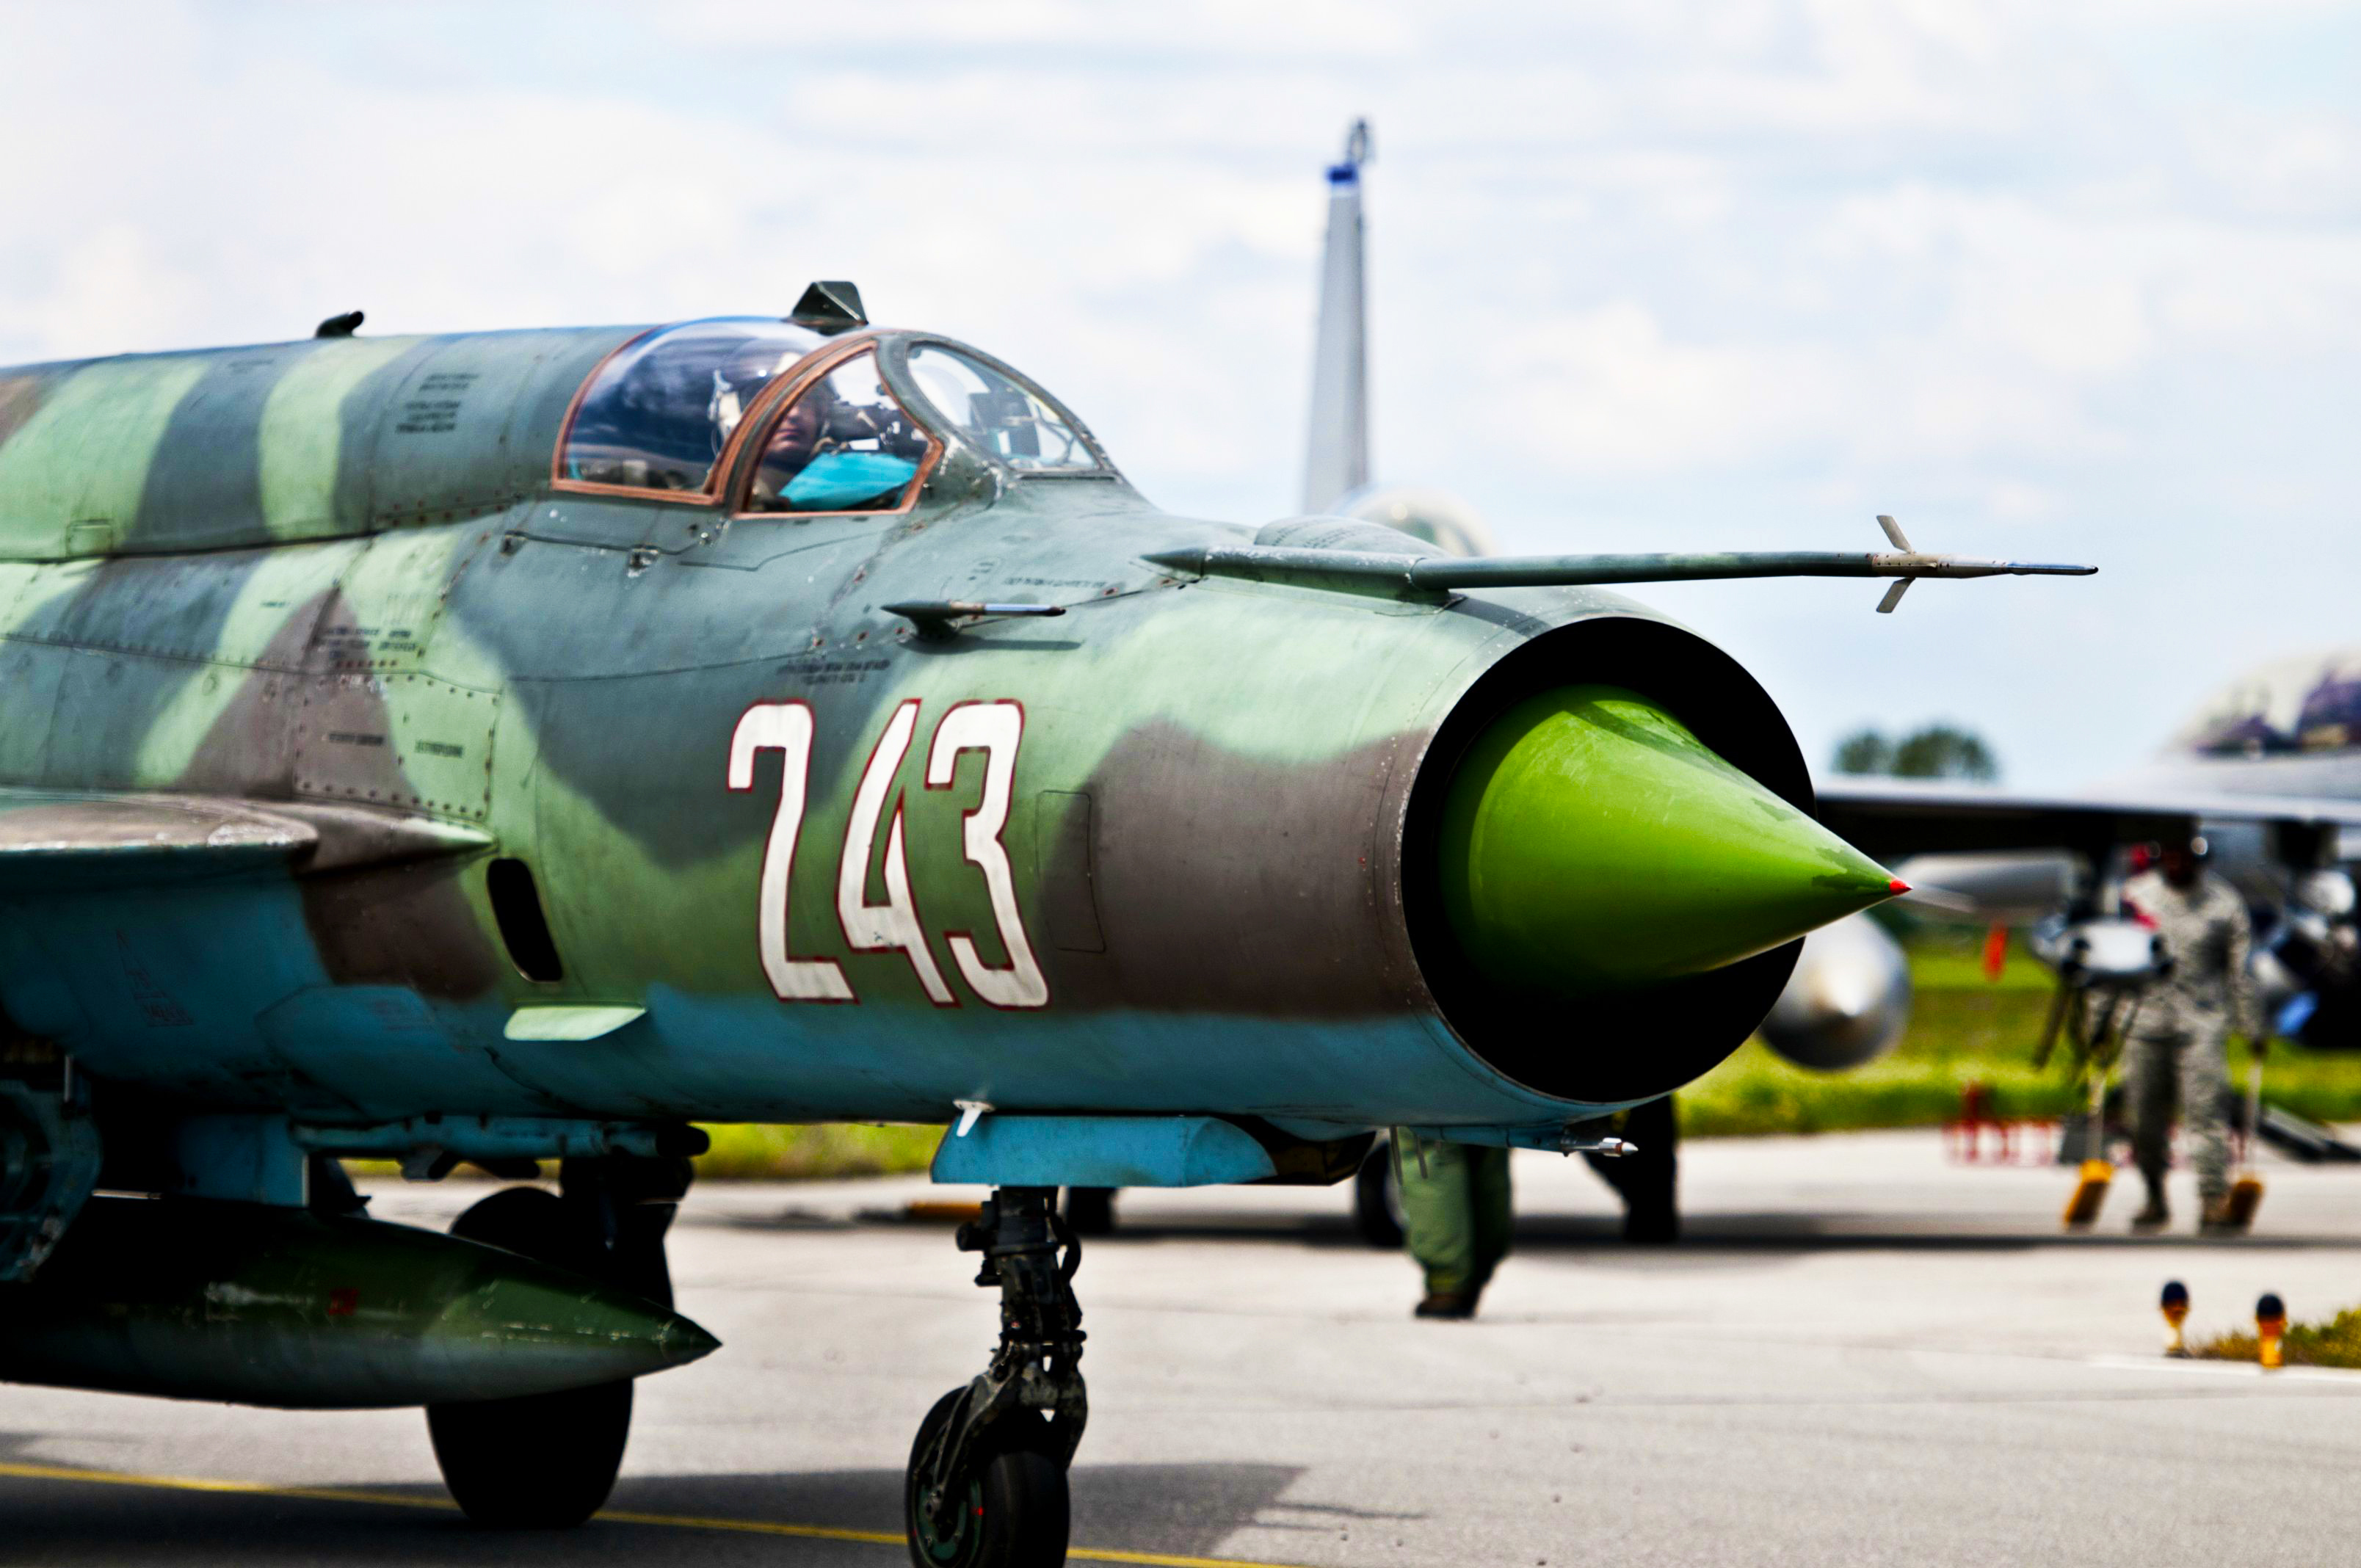 Mig-21 Fishbed Multipurpose fighter Aircraft Mikoyan